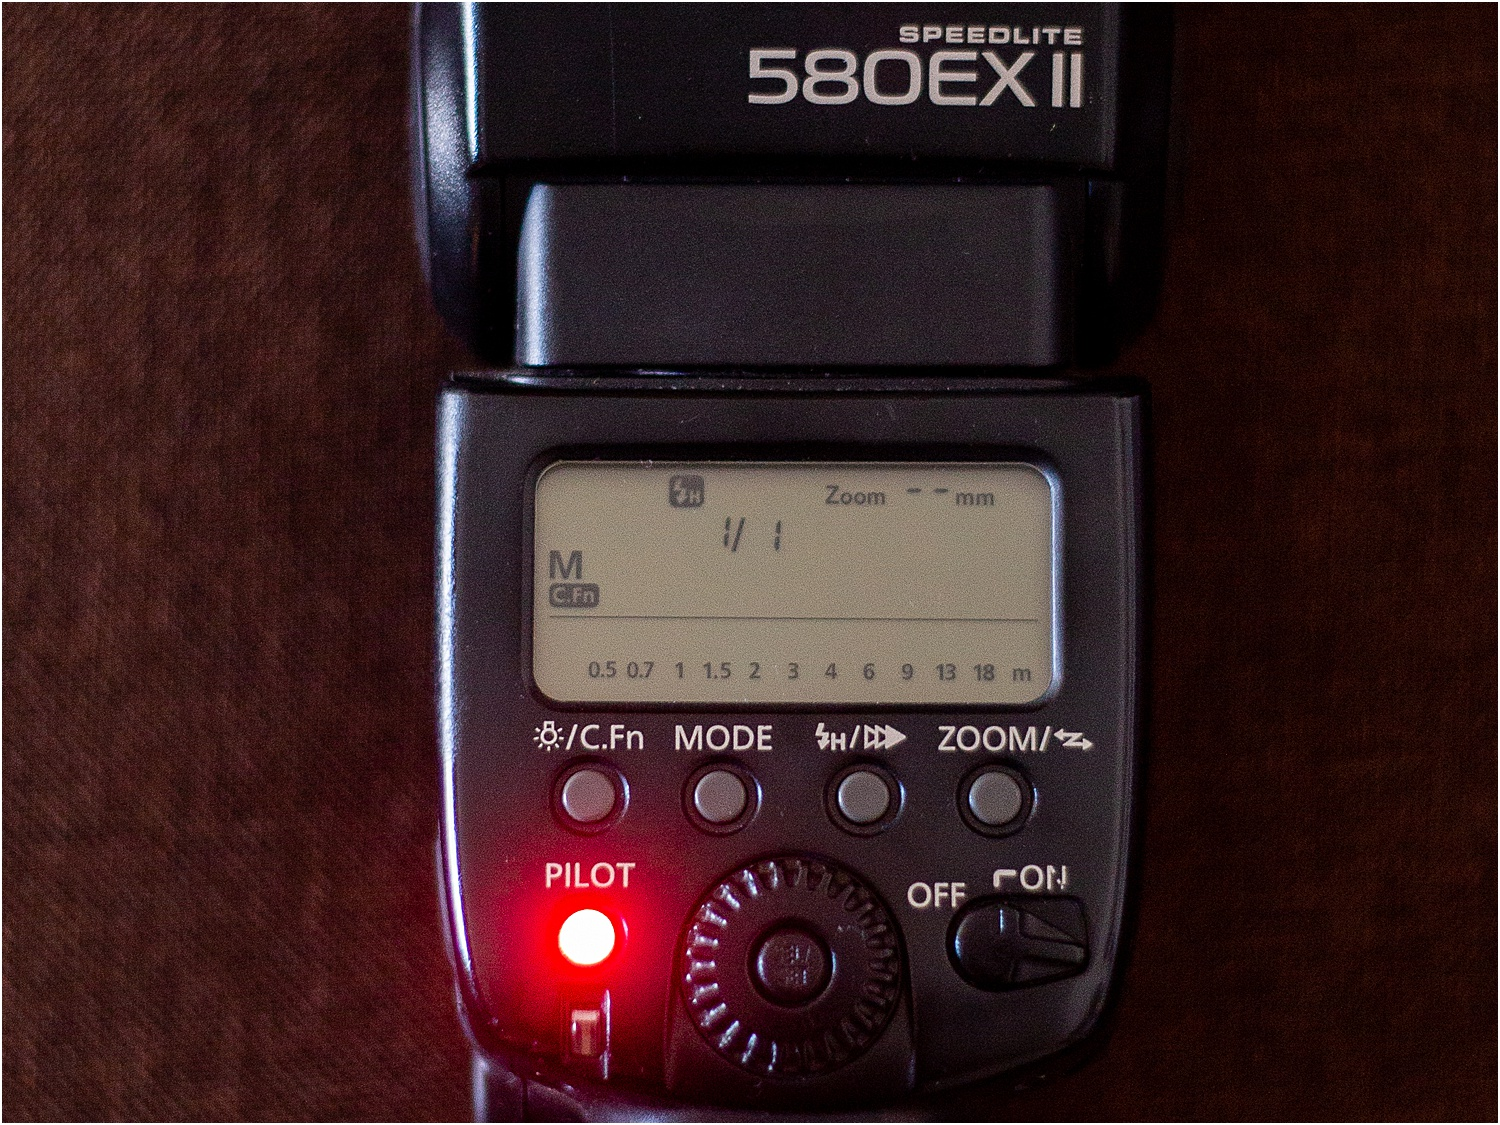 4 - Use of manual mode on your external flash